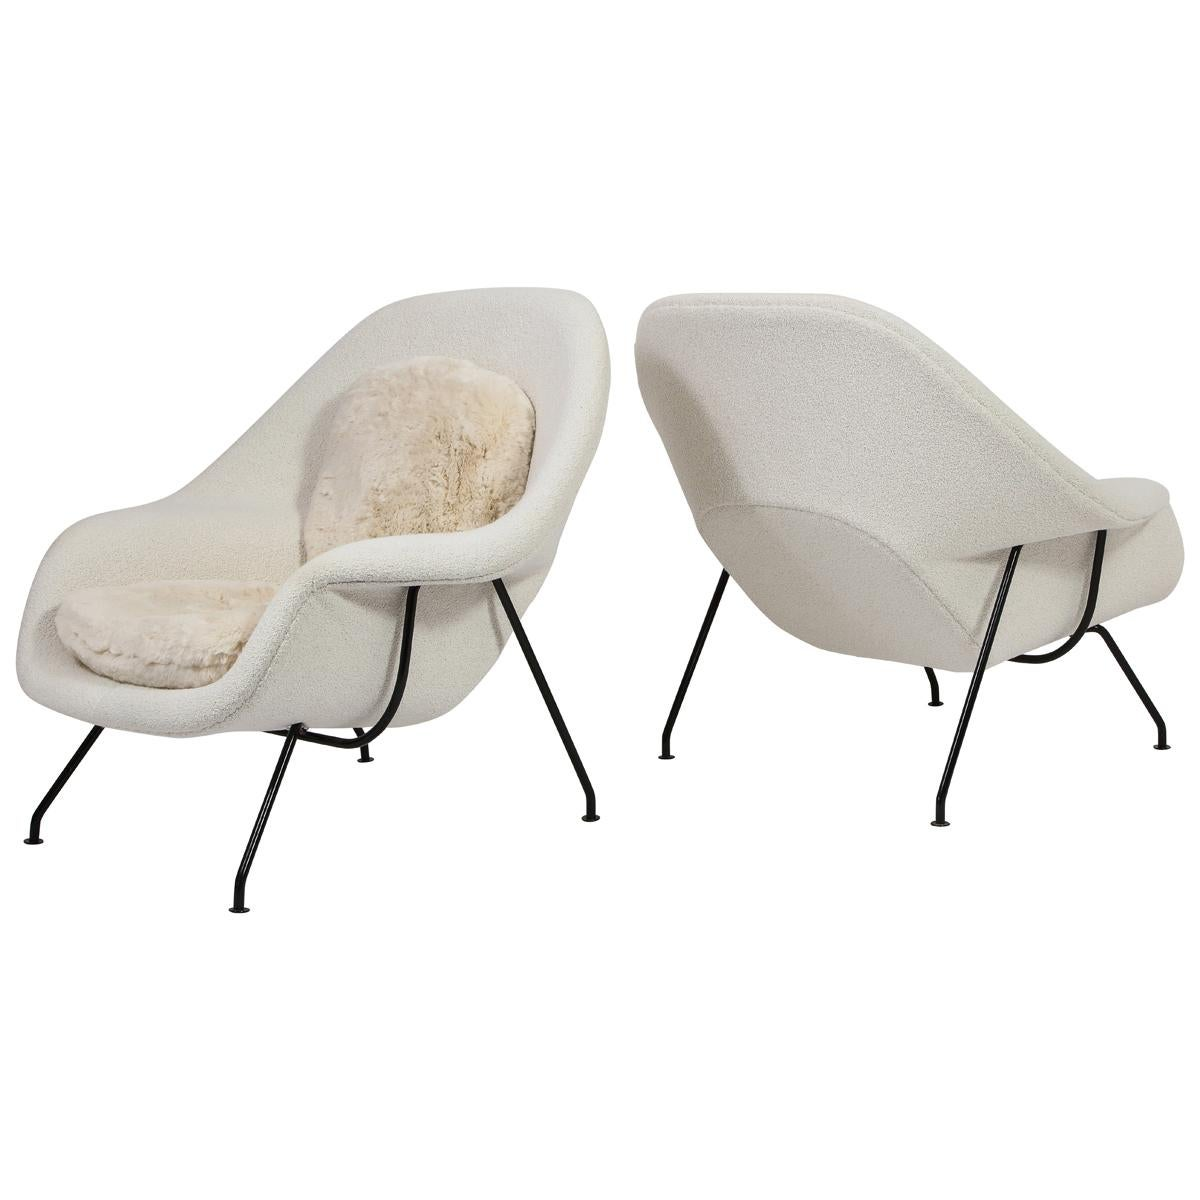 Pair of Two-Tone Womb Chairs with Ottomans by Eero Saarinen for Knoll, USA, 1955